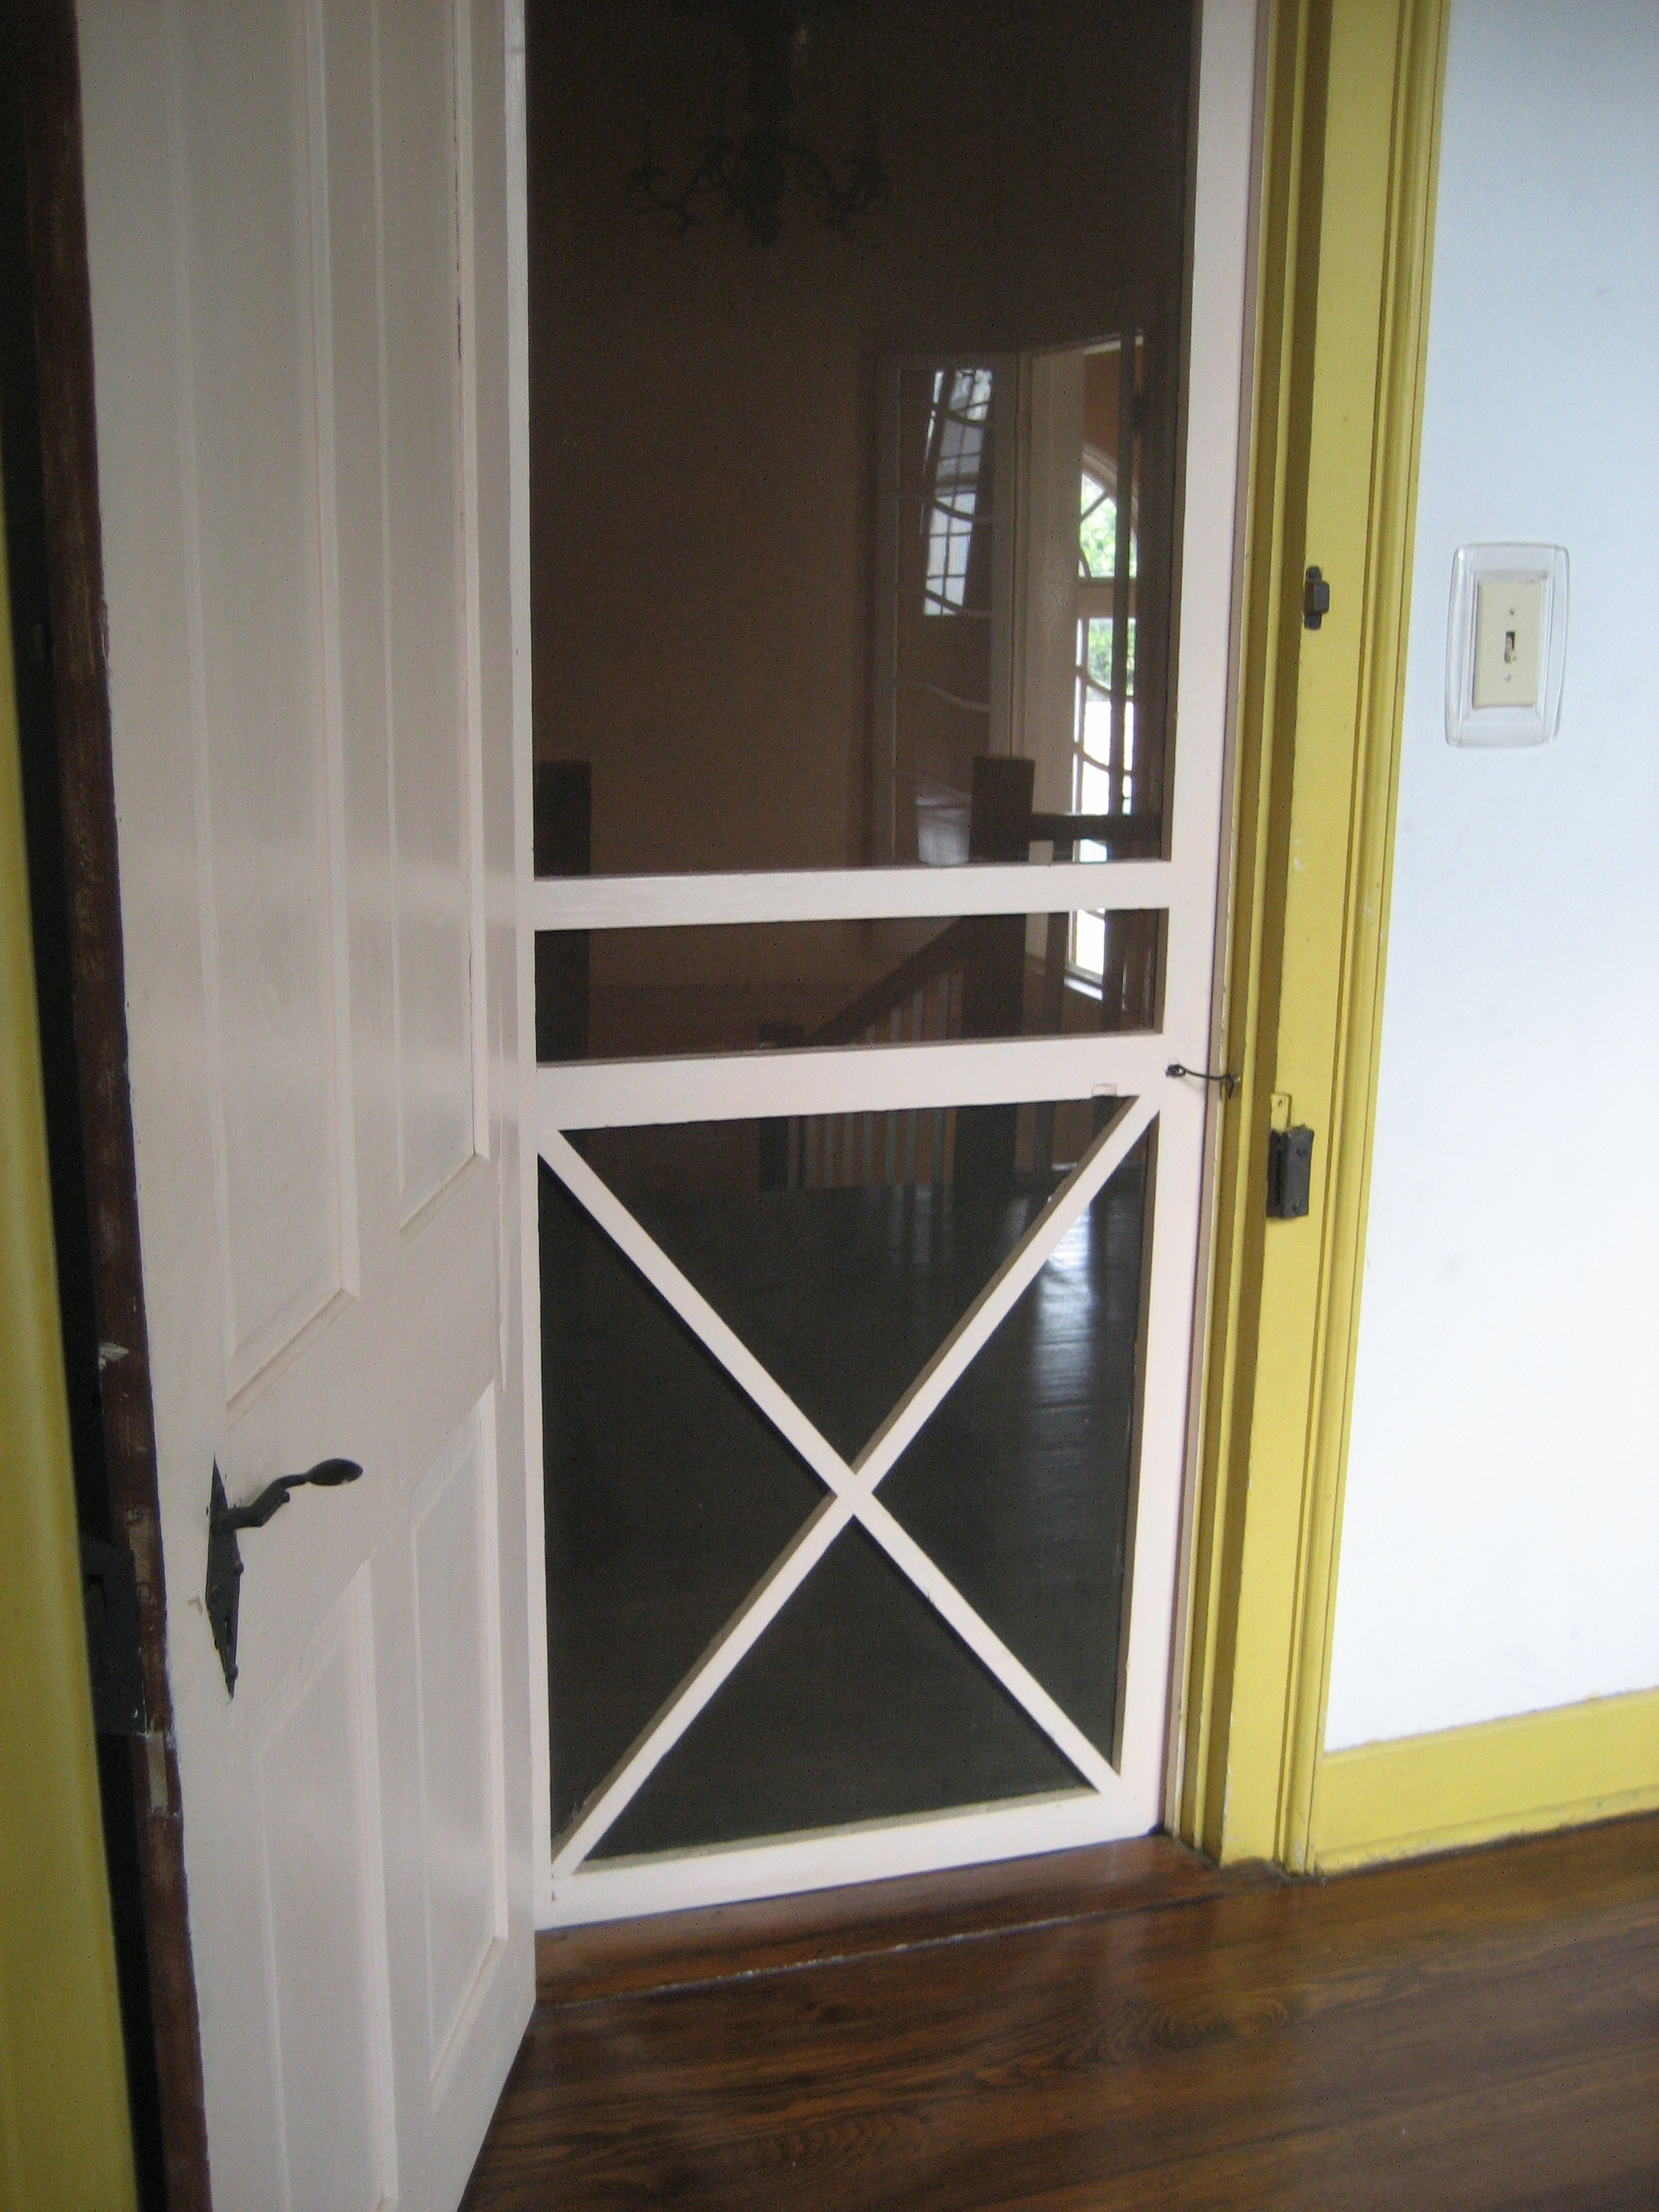 fileflickr customhouse interior screen doorjpg